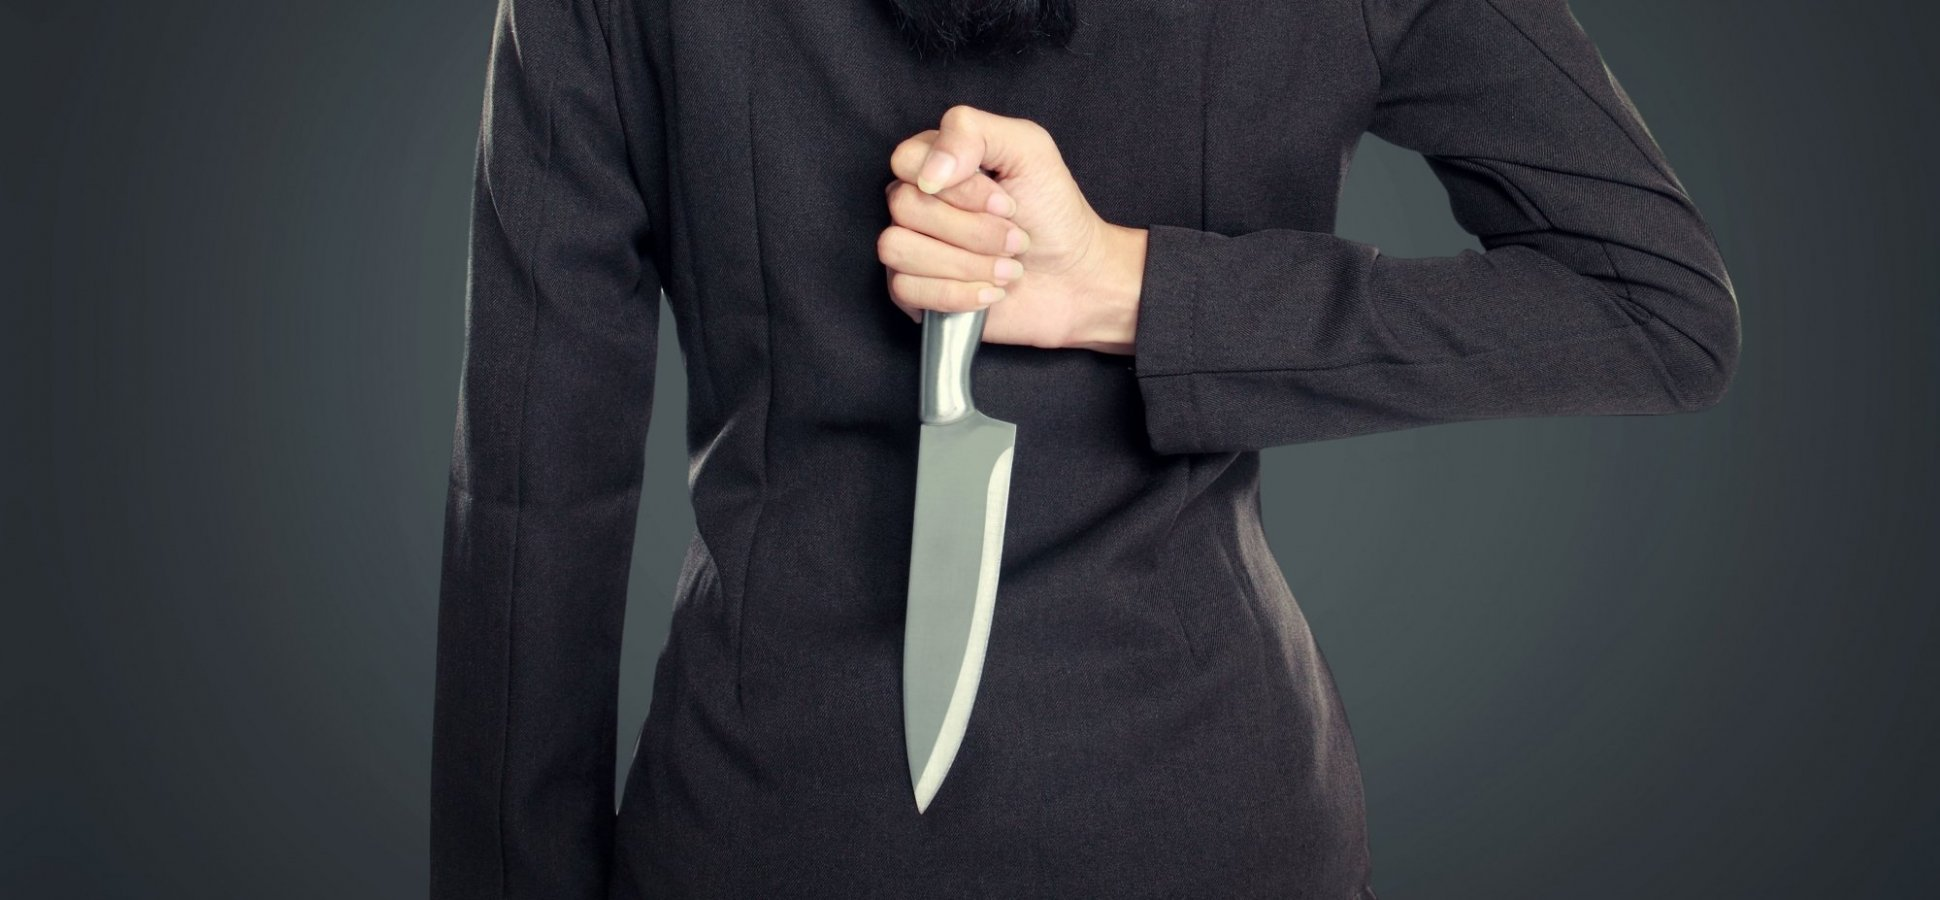 5 Tactics Passive Aggressive People Use to Get Under Your Skin (and How You Can Fight Back) | Inc.com